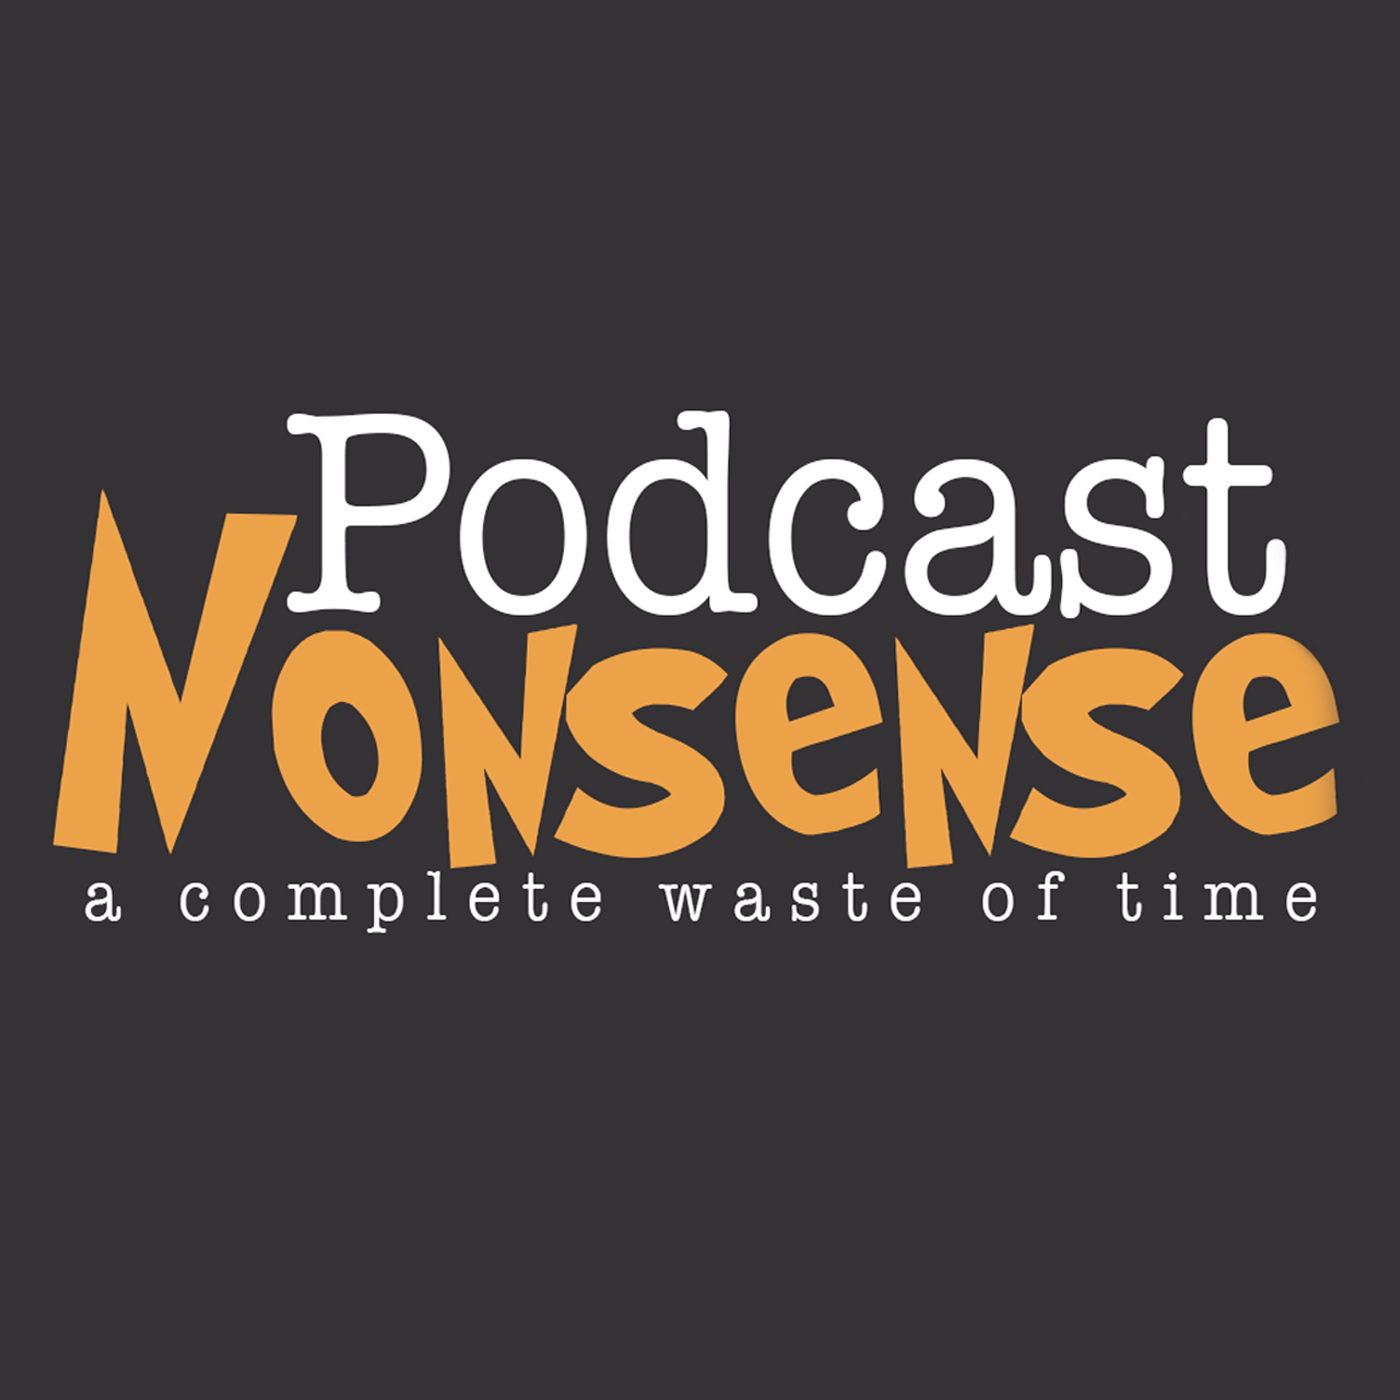 Podcast Nonsense